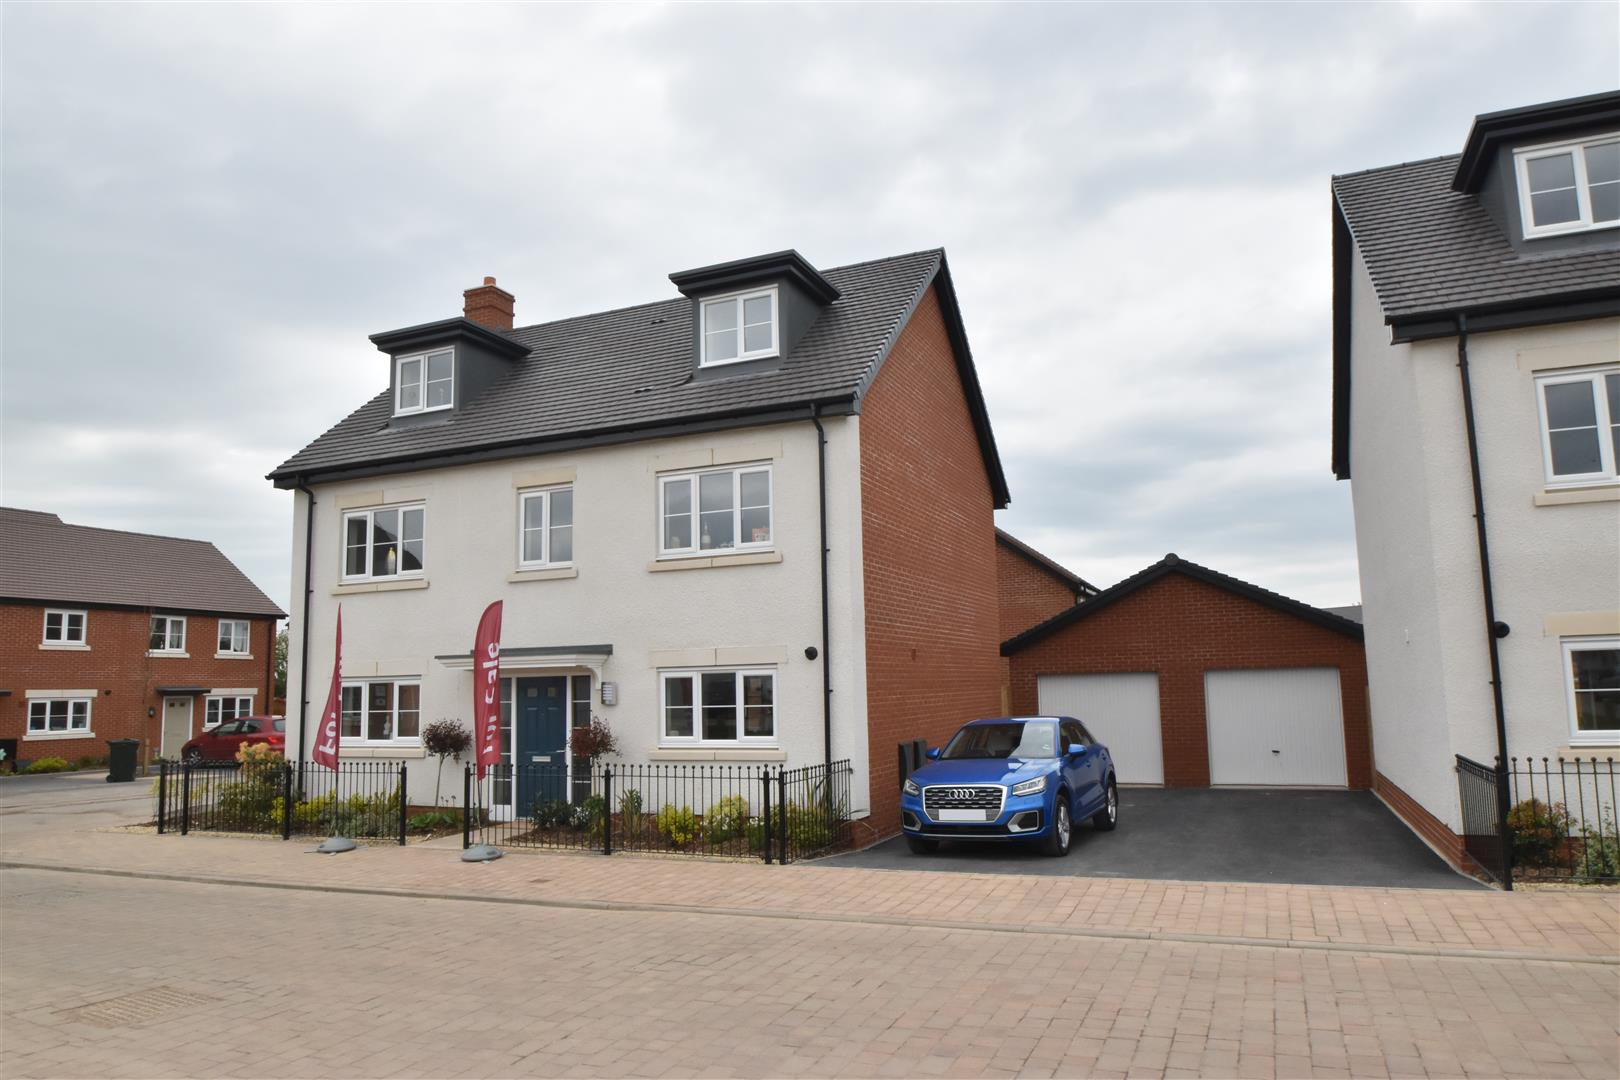 5 Bedrooms Detached House for sale in The Baughton, Lawnspool Drive, Kempsey